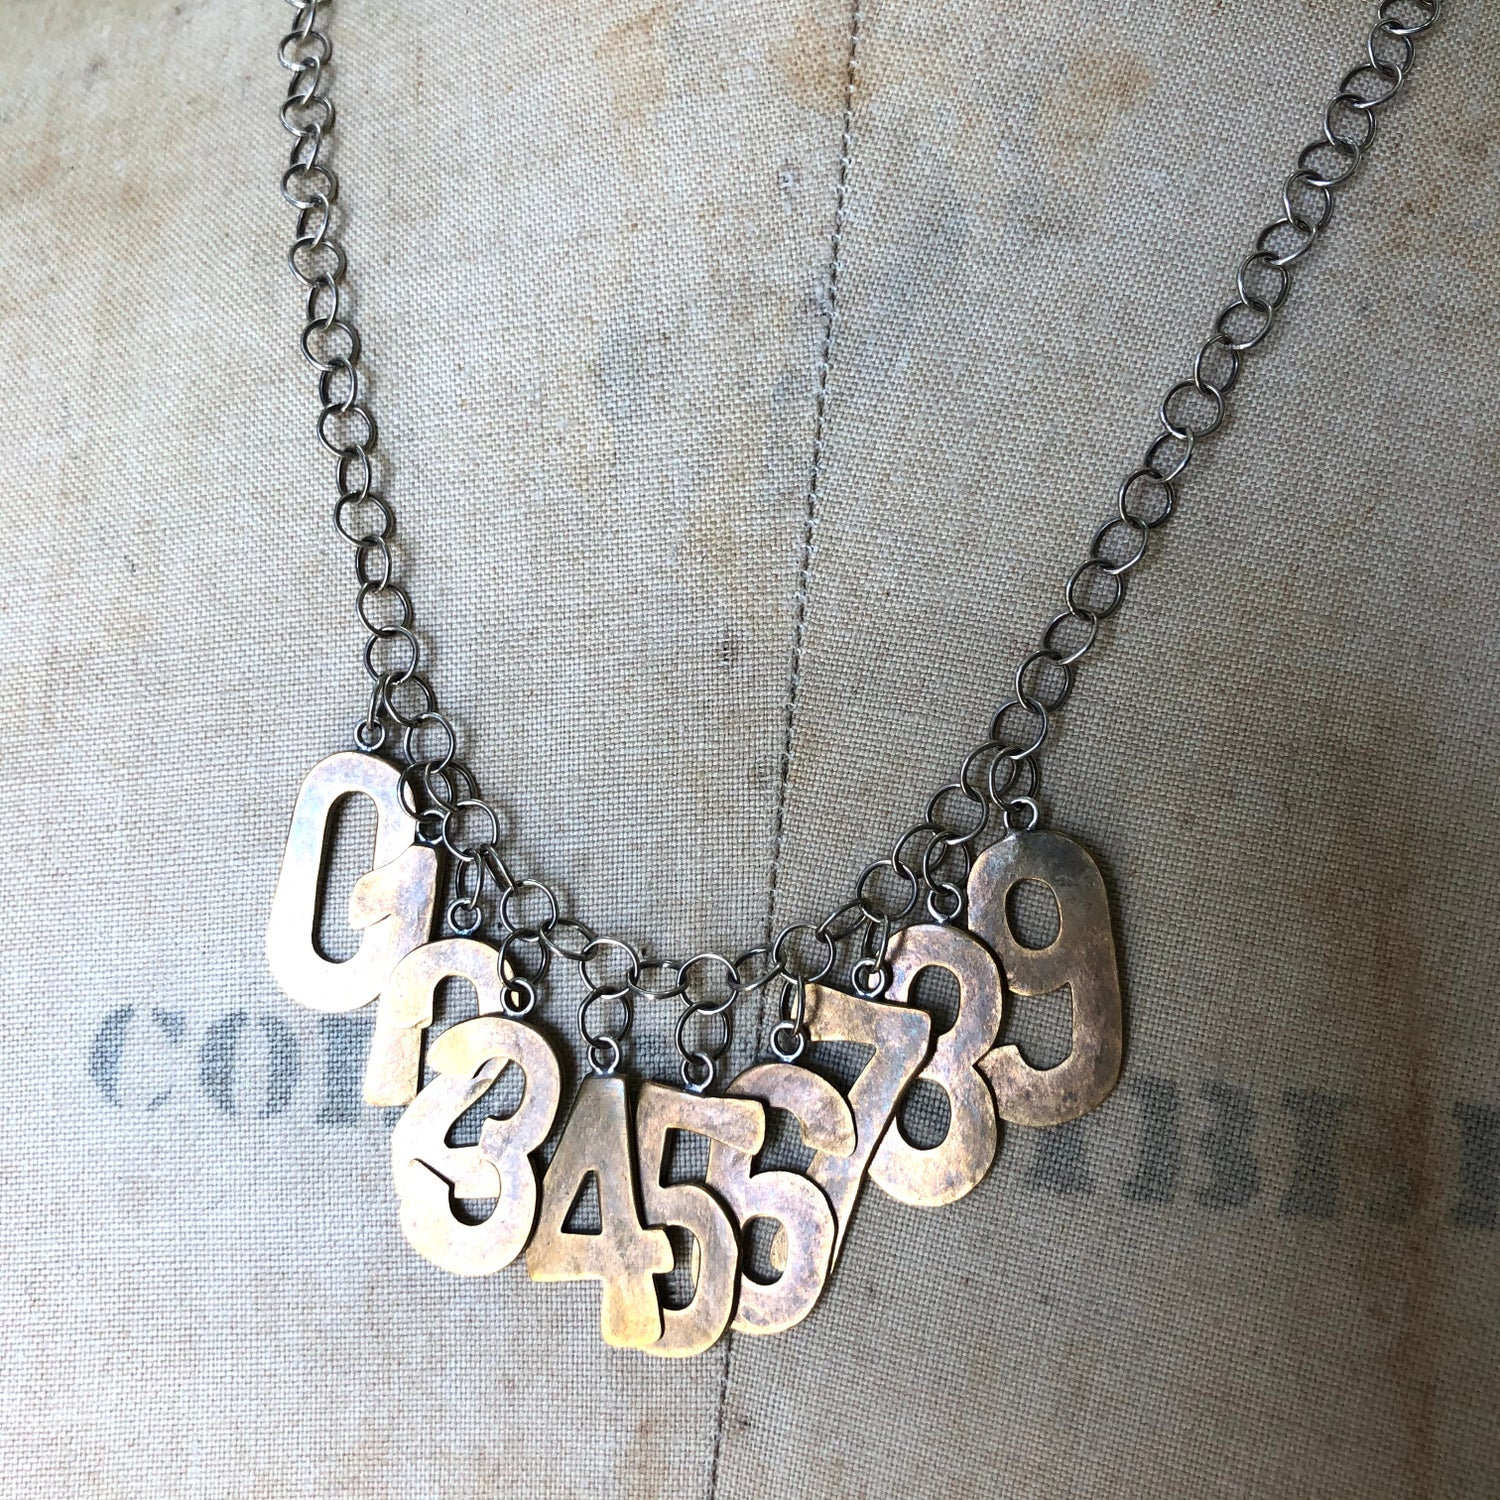 Image of 0 to 9 necklace